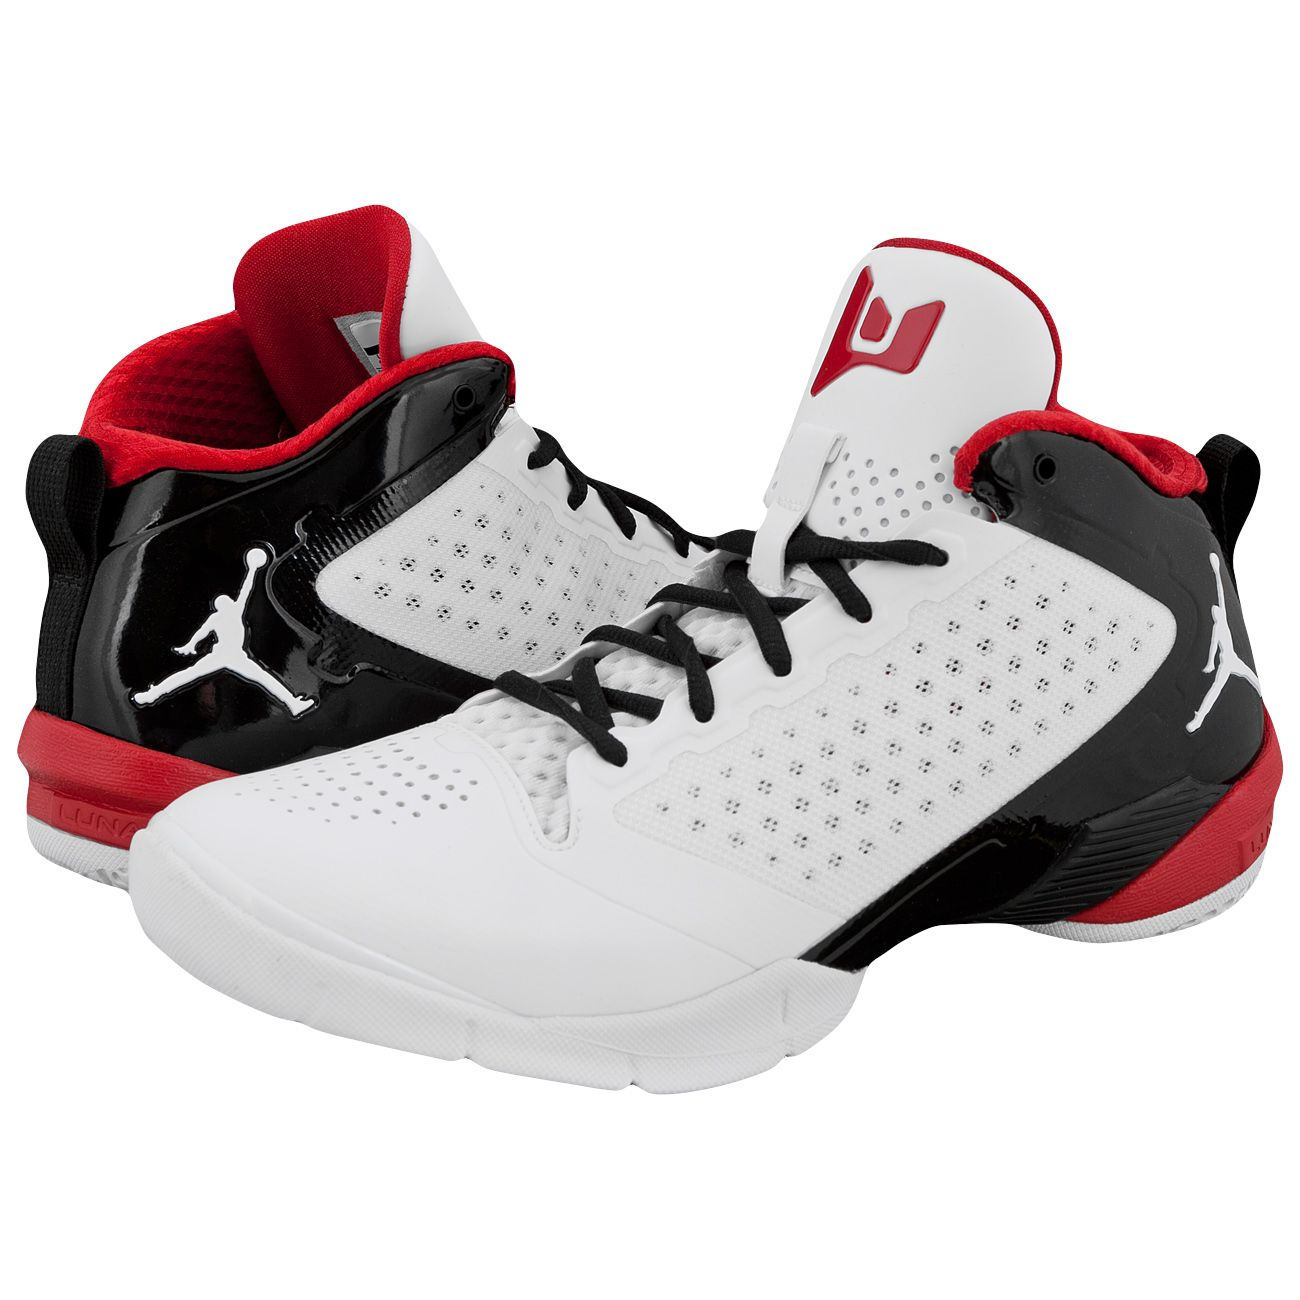 d225267560e6 Nike Air Jordan Fly Wade 2 Basketball Shoes White Varsity Red Black ...